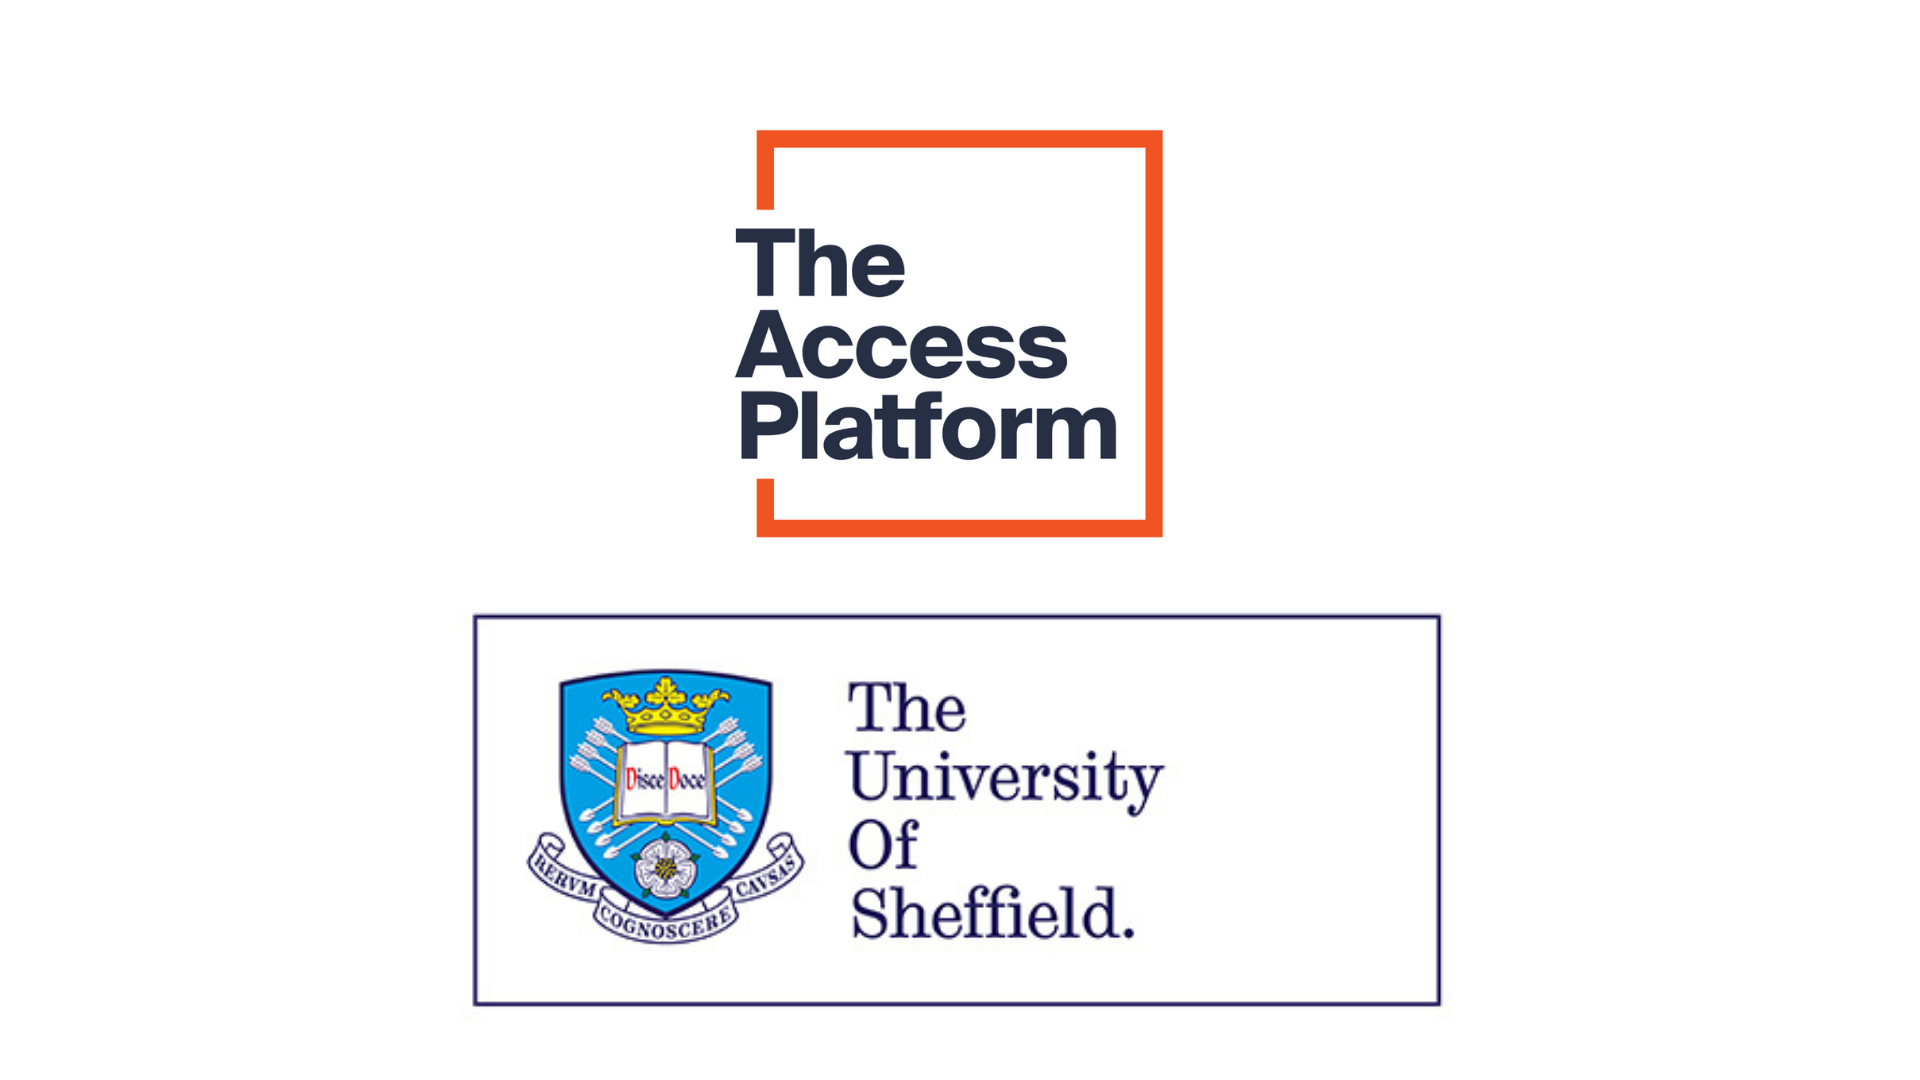 In conversation with The University of Sheffield